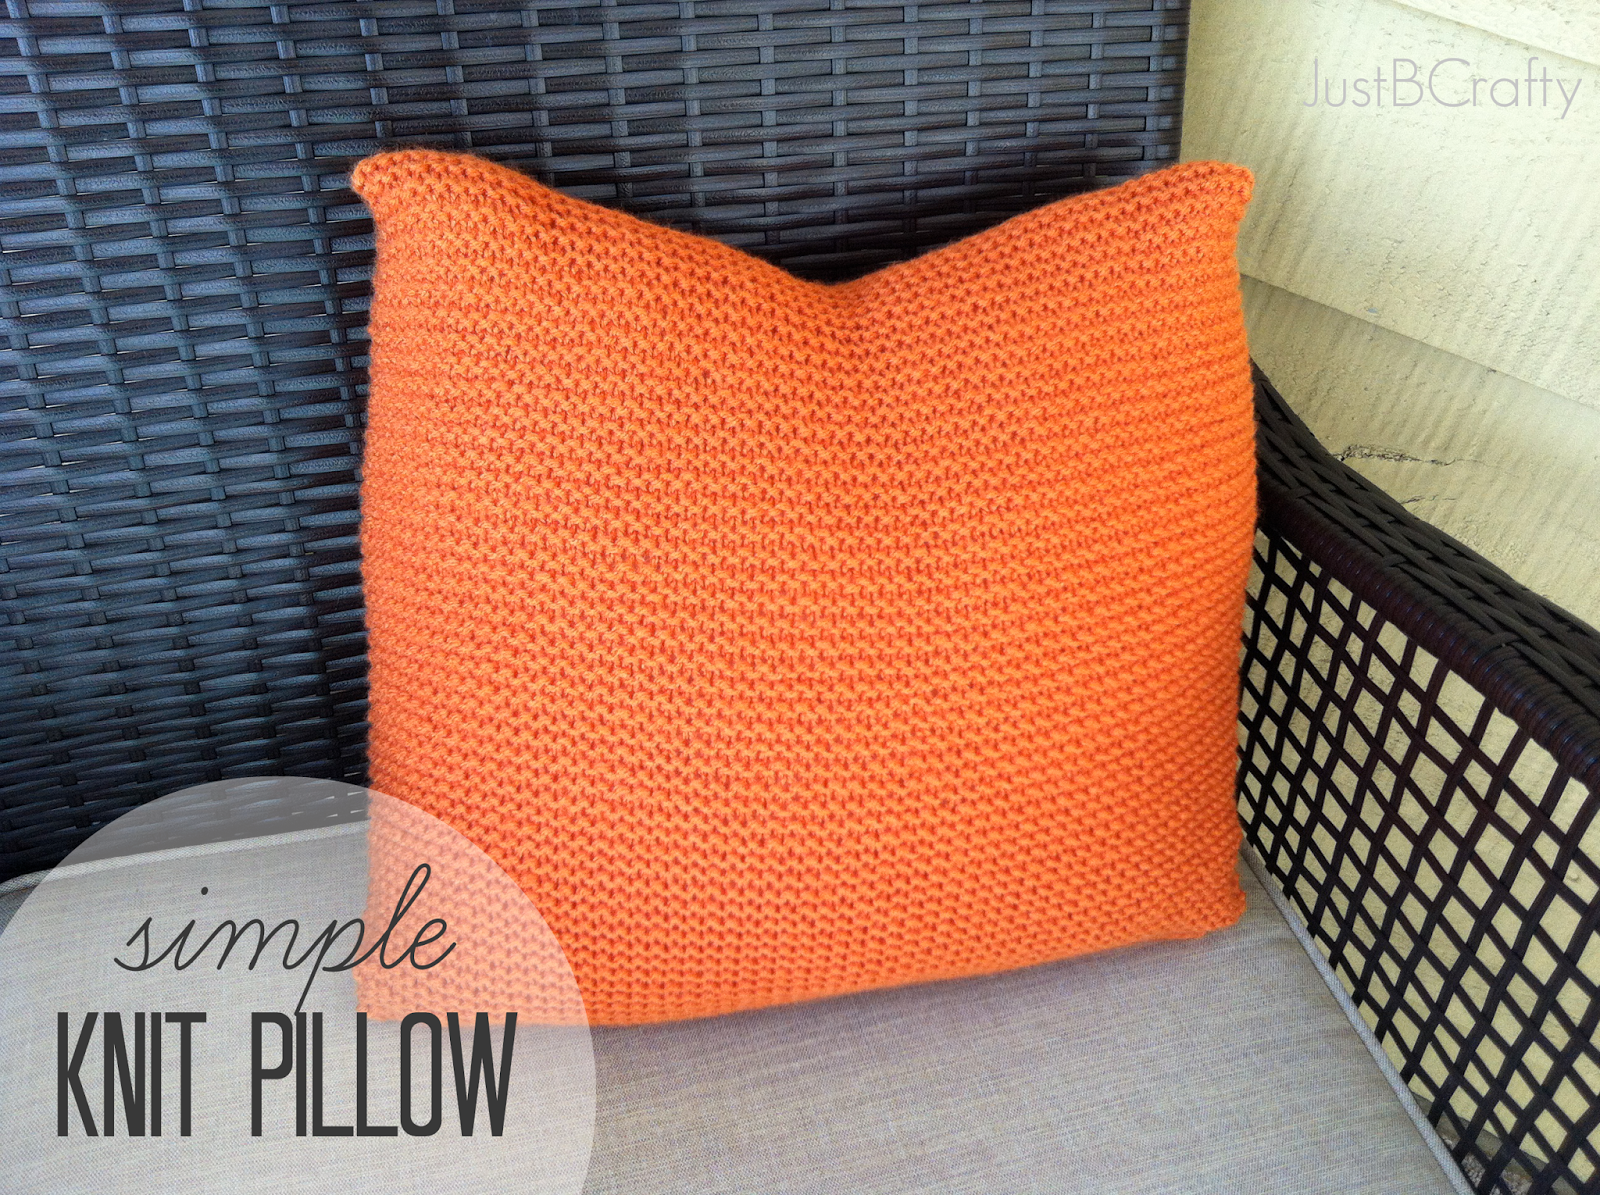 DIY: Crate and Barrel Inspired Simple Knit Pillow - Just Be Crafty